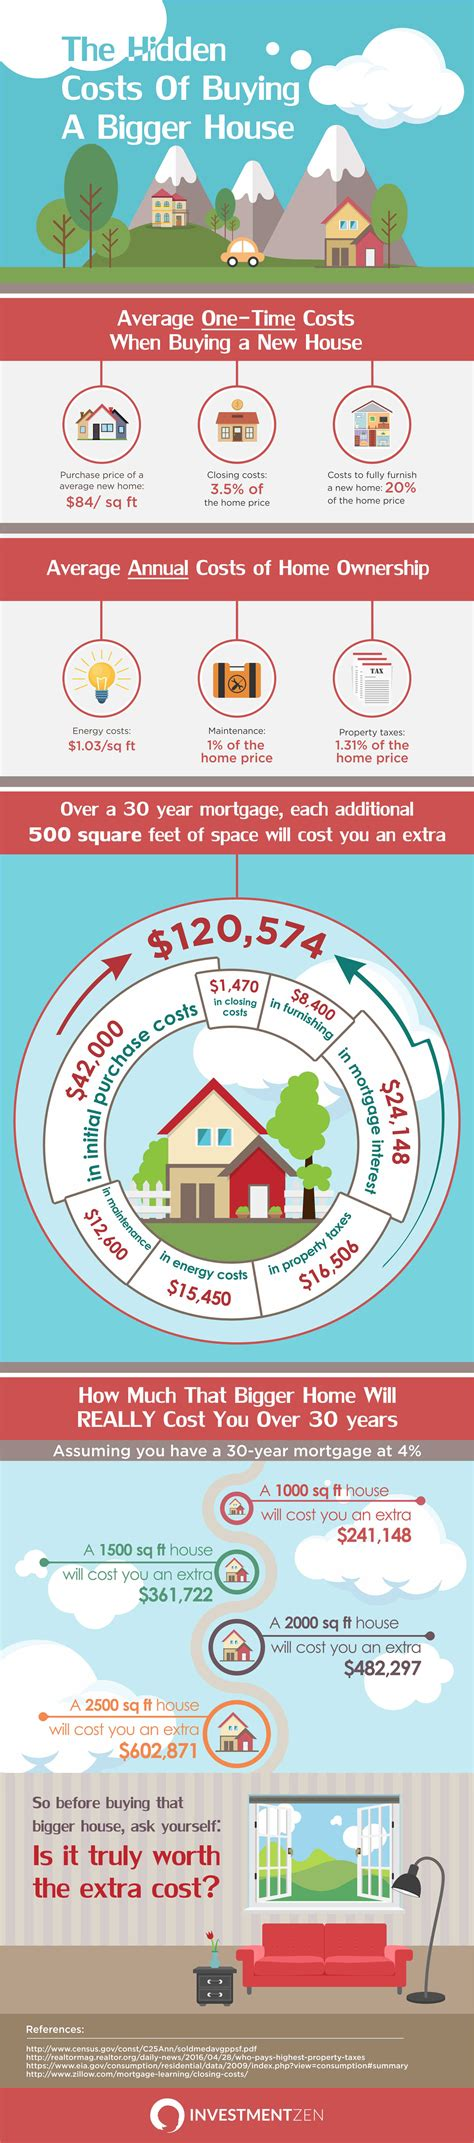 search fees when buying a house the hidden costs of buying a bigger house infographic